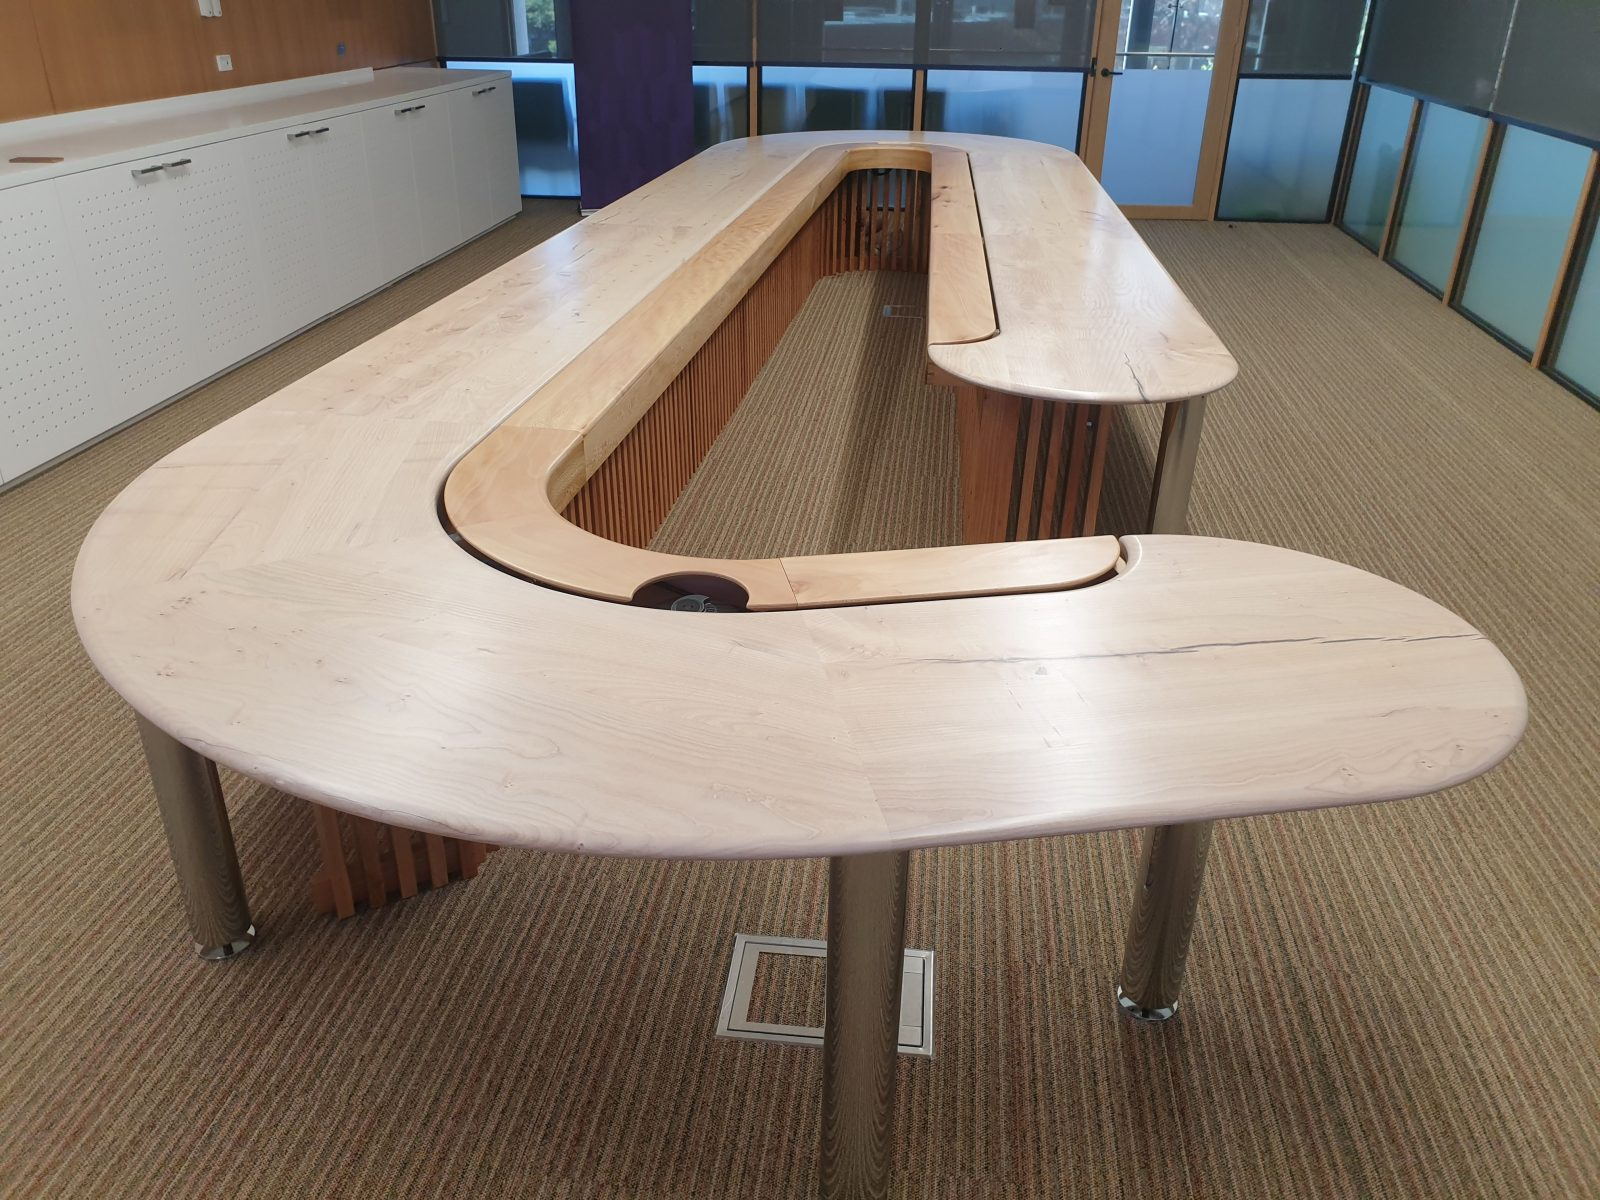 ACU Re-birth Project by Koitoya ~Using campus tree for furniture~